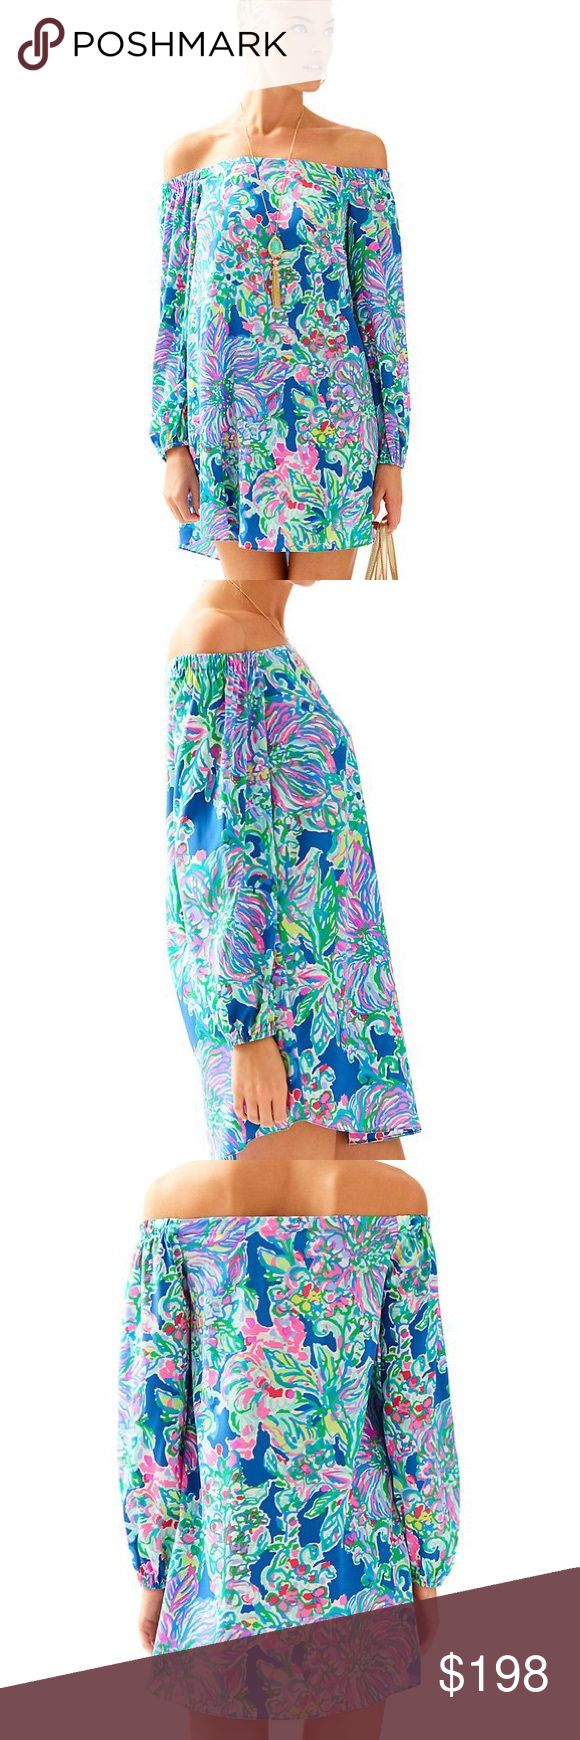 """lilly Pulitzer adira off the shoulder dress large Size large. Stretch silk. 2017. Price is firm I paid full price and am losing out on this but I bought it non returnable. Super cute off the shoulder style beautiful print great reviews online. NWT The Adira Stretch Silk Dress is an A-line, long sleeved, off the shoulder dress. Sleeved Off The Shoulder Dress. 35"""" From Top Of Shoulder To Hem. Length: Above The Knee. Stretch Silk - Printed (90% Silk, 10% Spandex). Dry Clean Only. Imported…"""